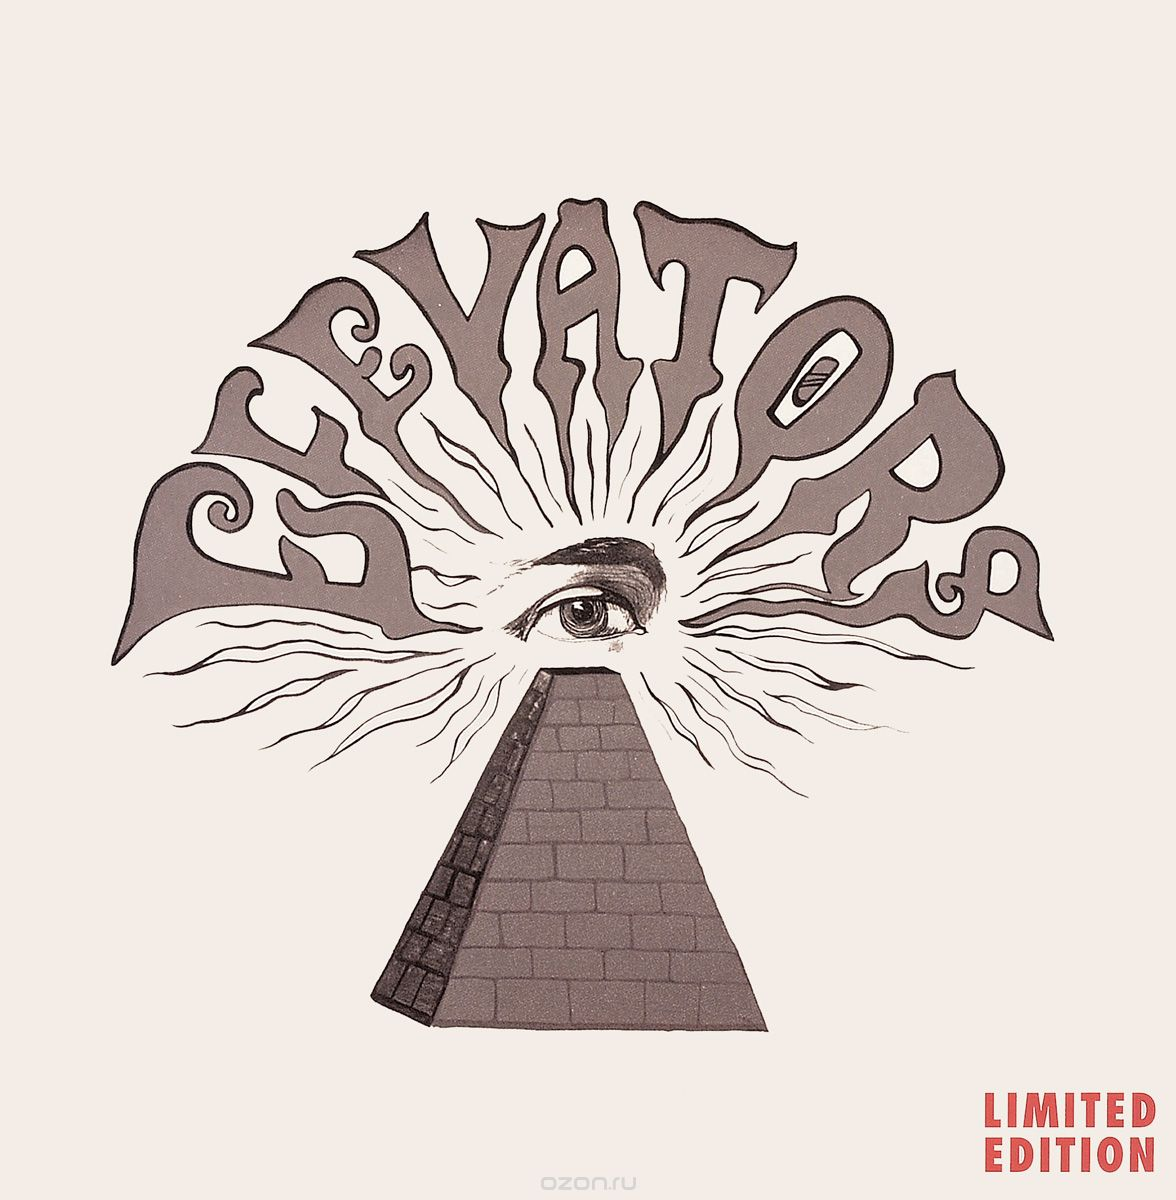 13th Floor Elevators. You